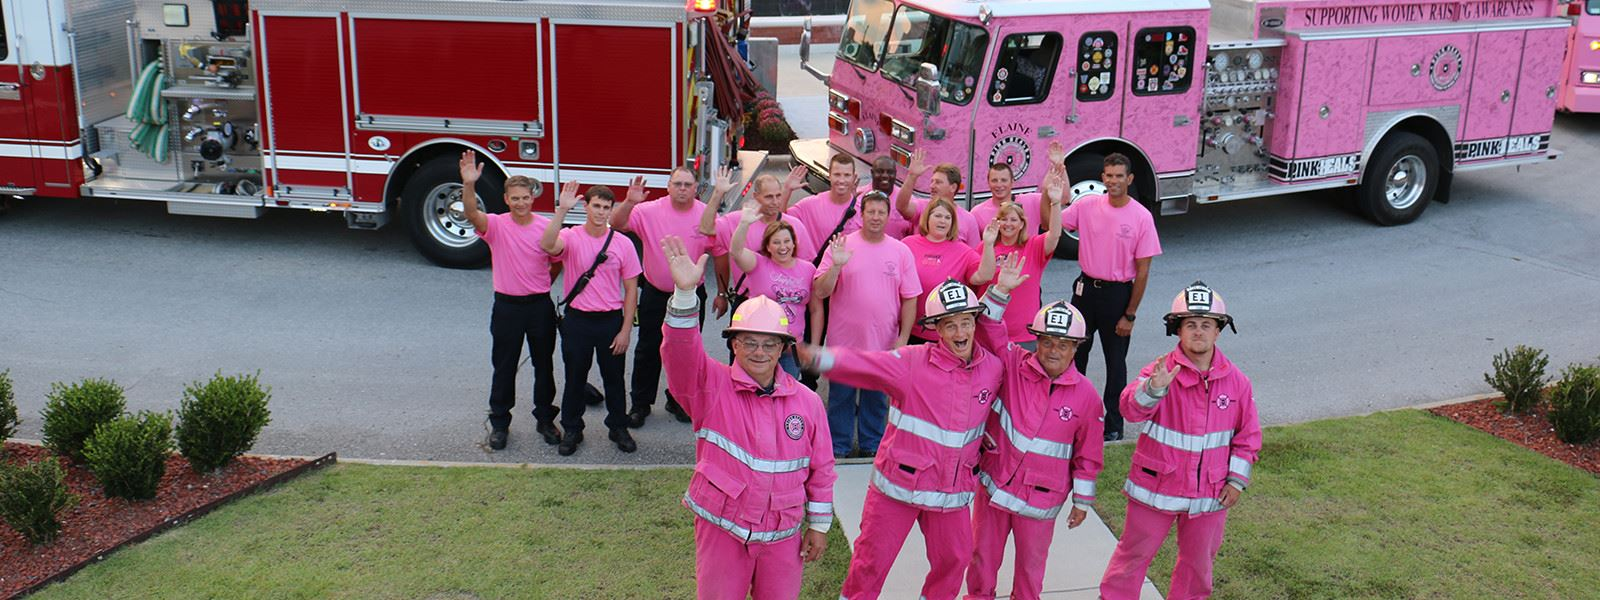 Firefighters and volunteers dressed in pink standing in front of a red firetruck and pink firetruck